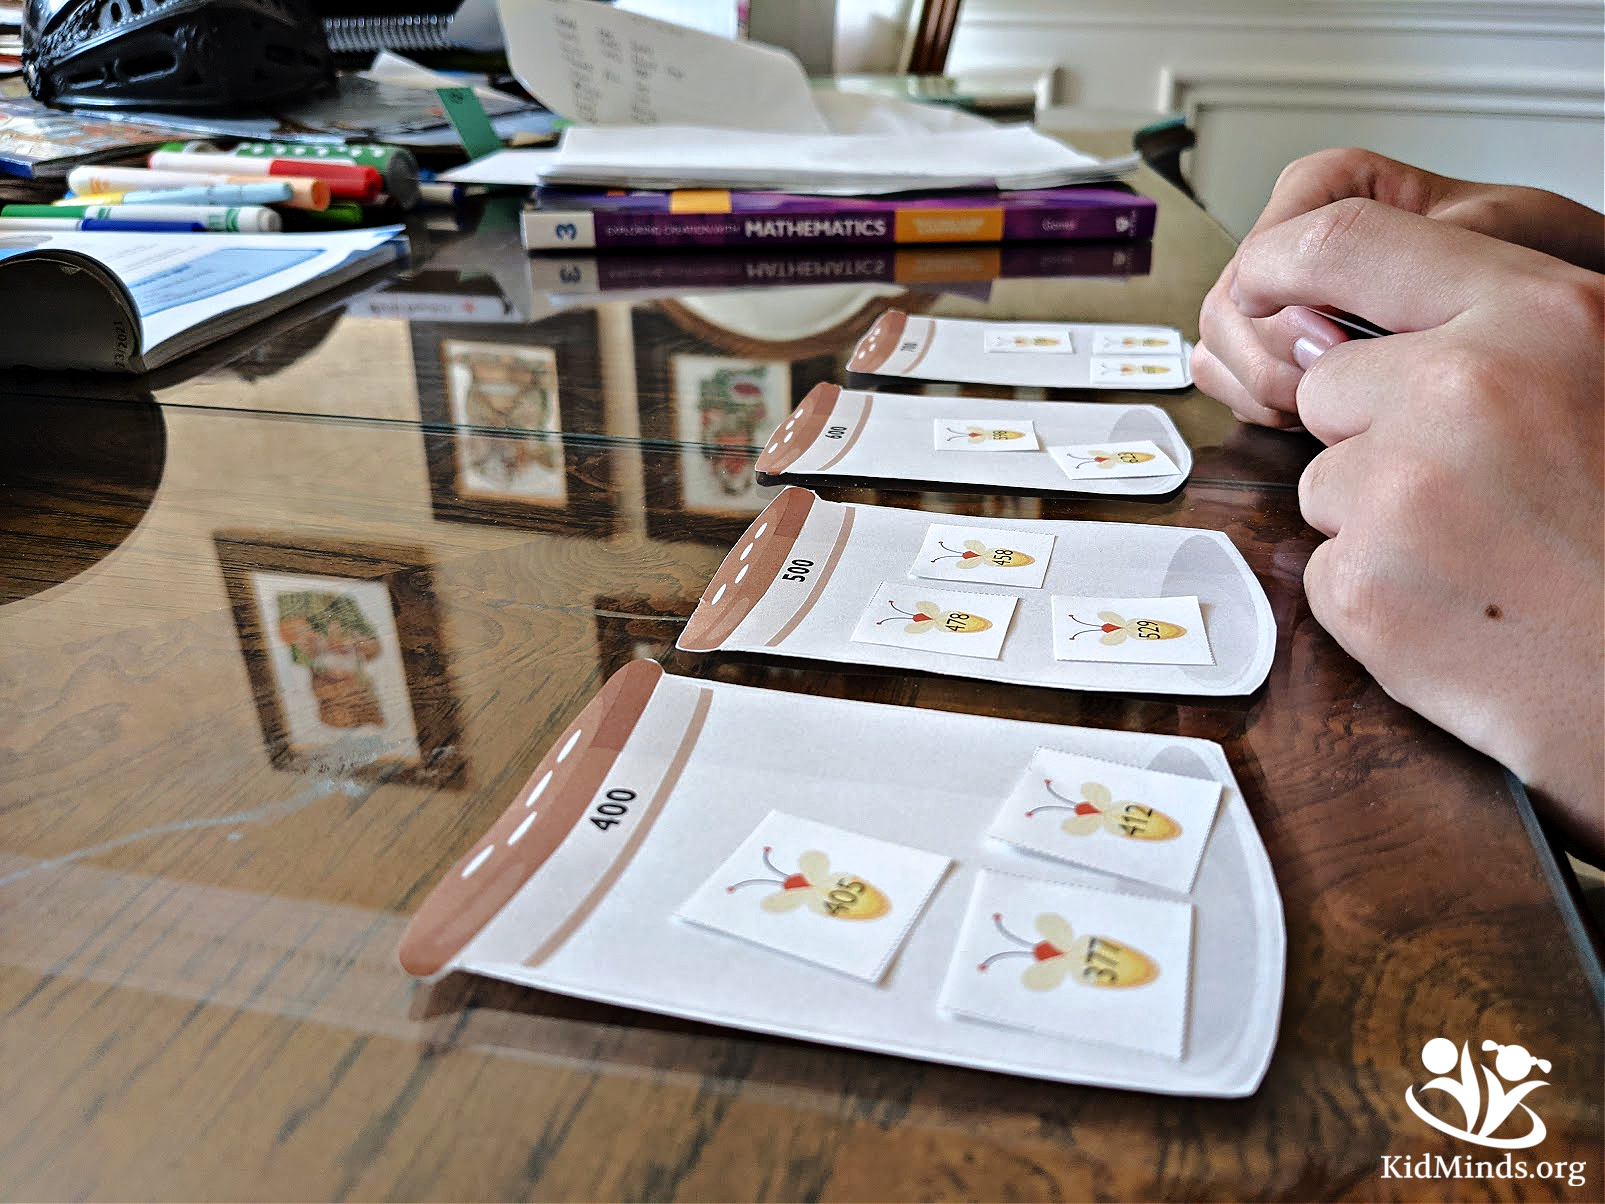 What would it be like to have fun teaching math at home? We tried the Apologia Math Curriculum for elementary grades and give it an enthusiastic thumbs up! #homeschooling #elementarymath #curriculum